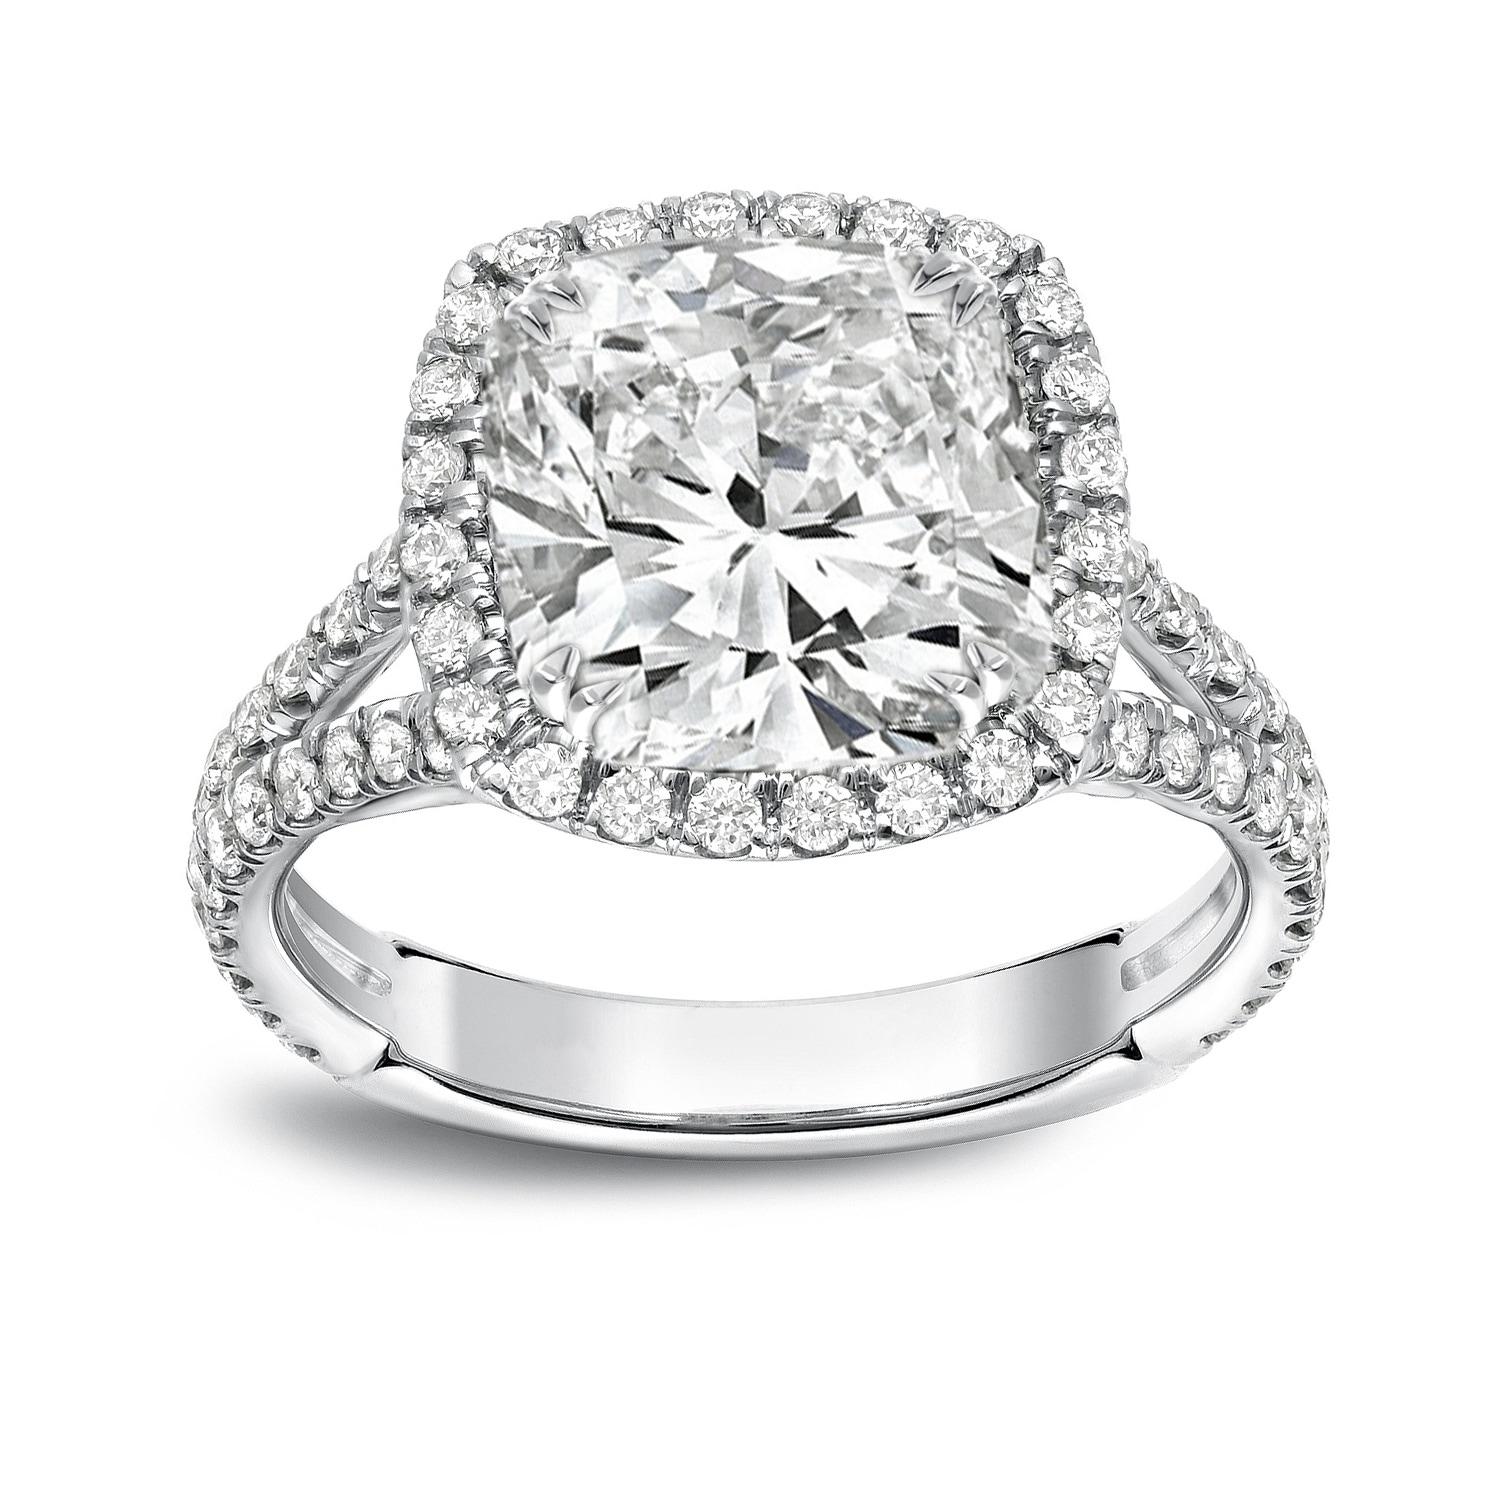 Auriya Platinum 4 1 3ctw Cushion Cut Halo Diamond Engagement Ring Certified